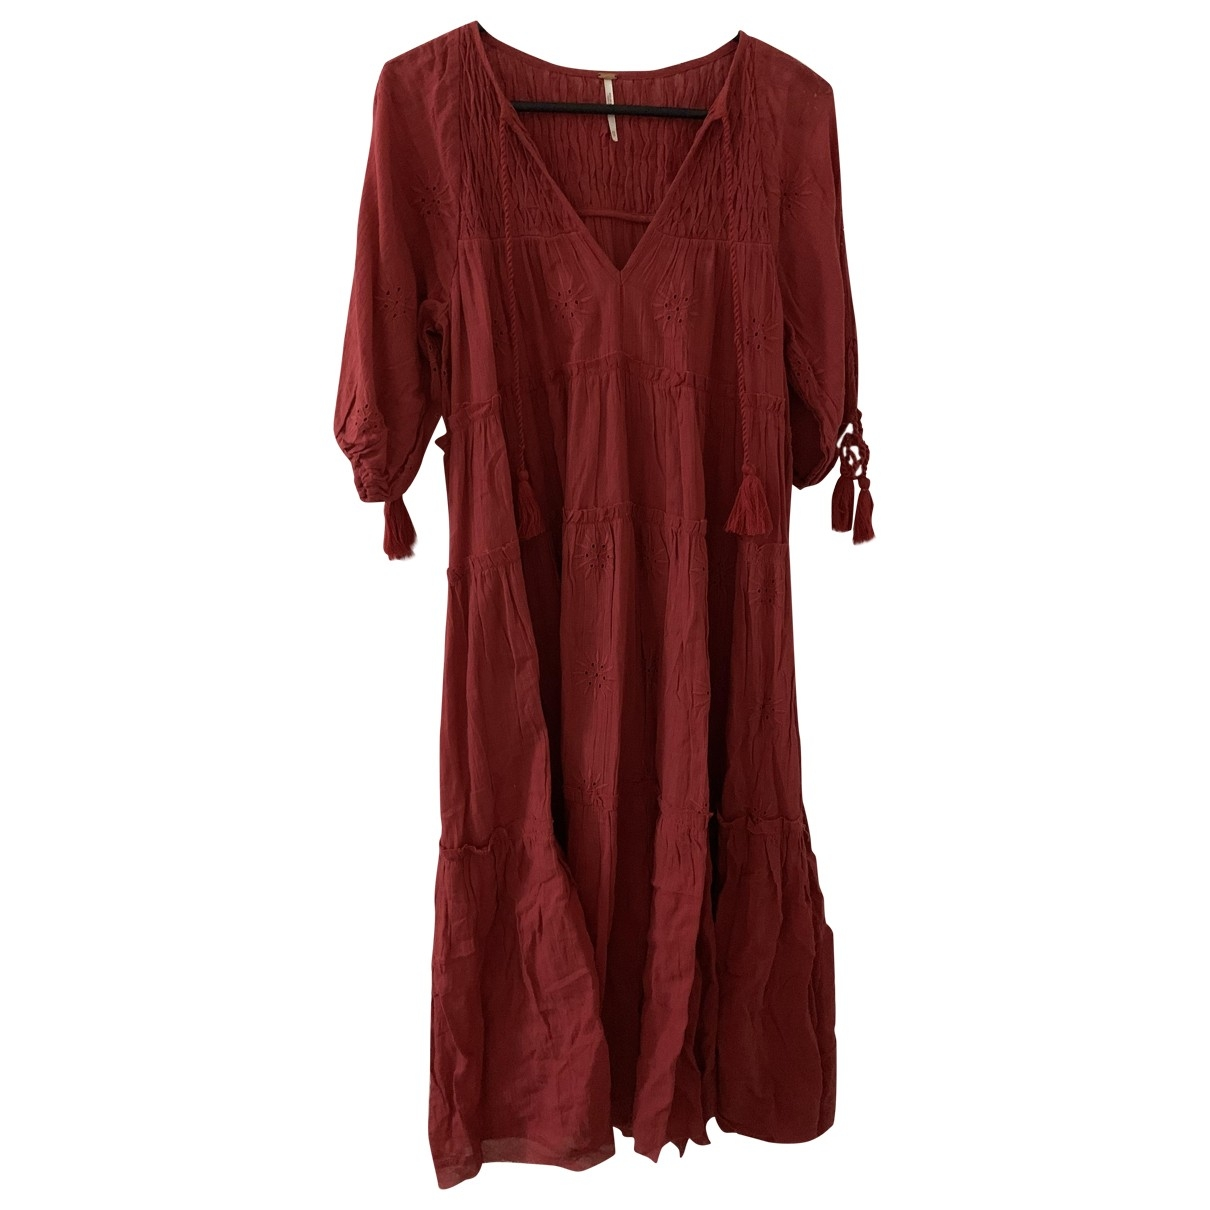 Free People \N Red Cotton dress for Women XS International